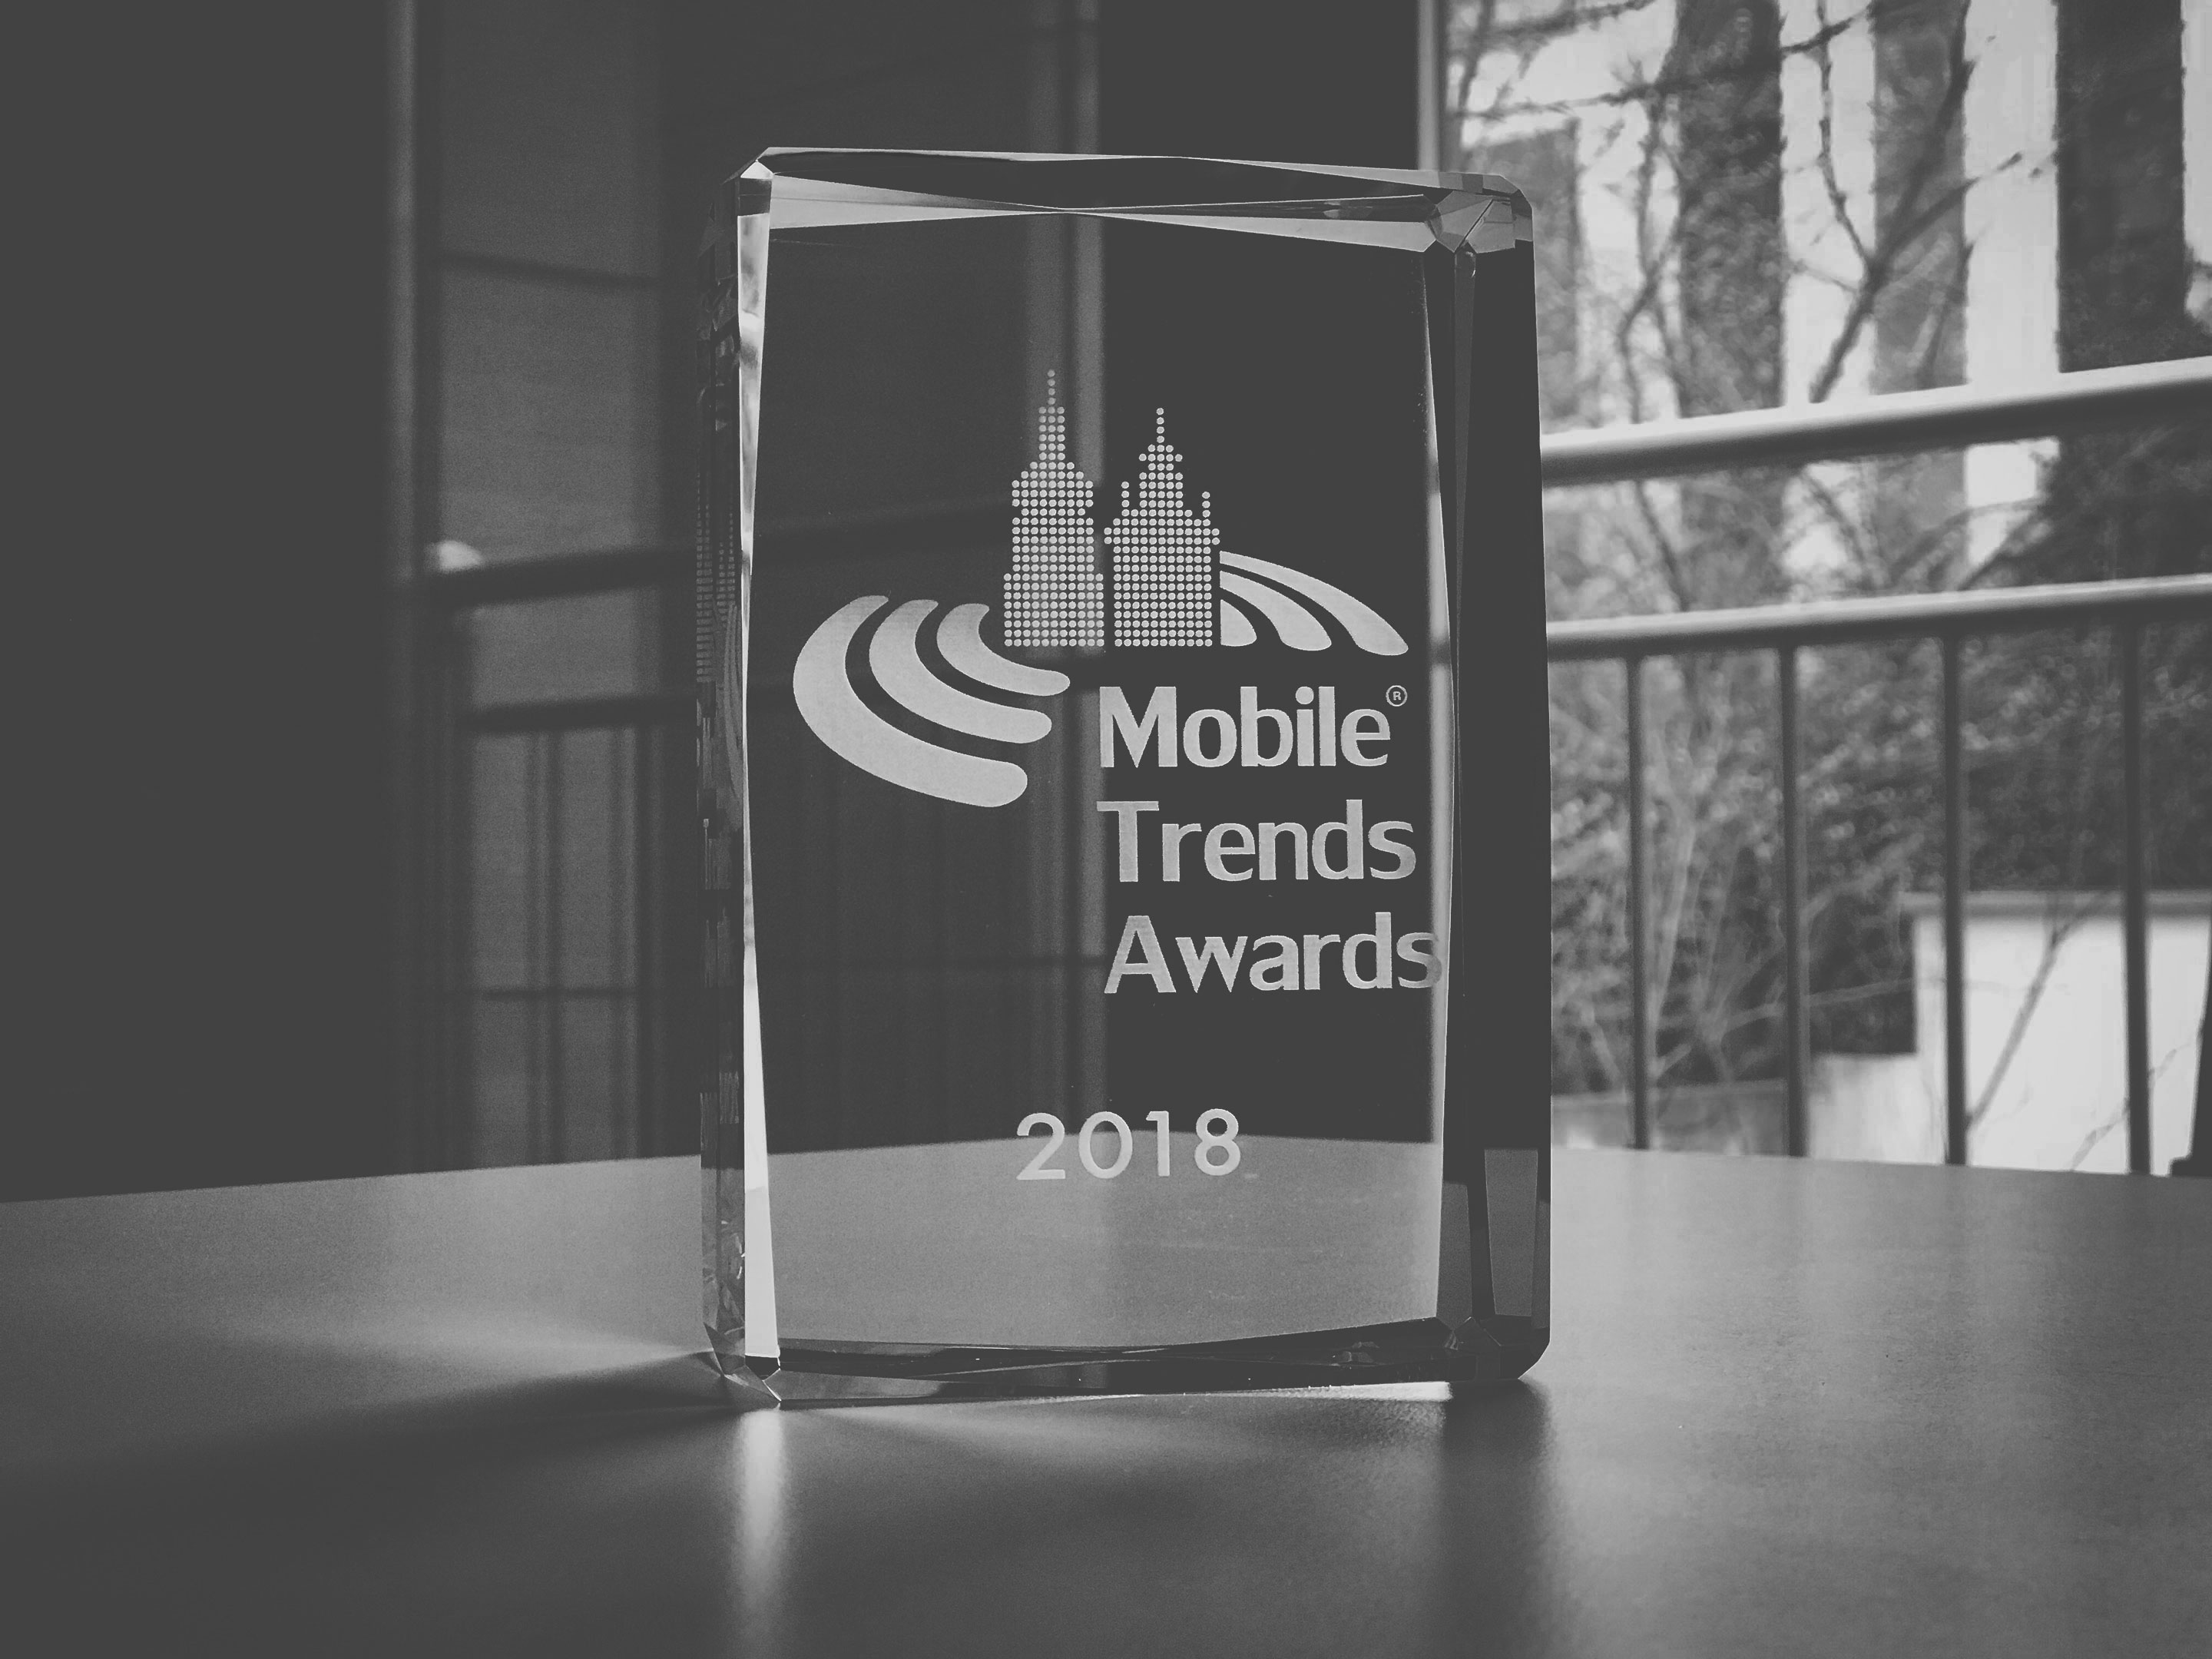 mobile trends winner blinkee nagroda b mind startup bw - Wygraliśmy Mobile Trends Awards 2018 w kategorii